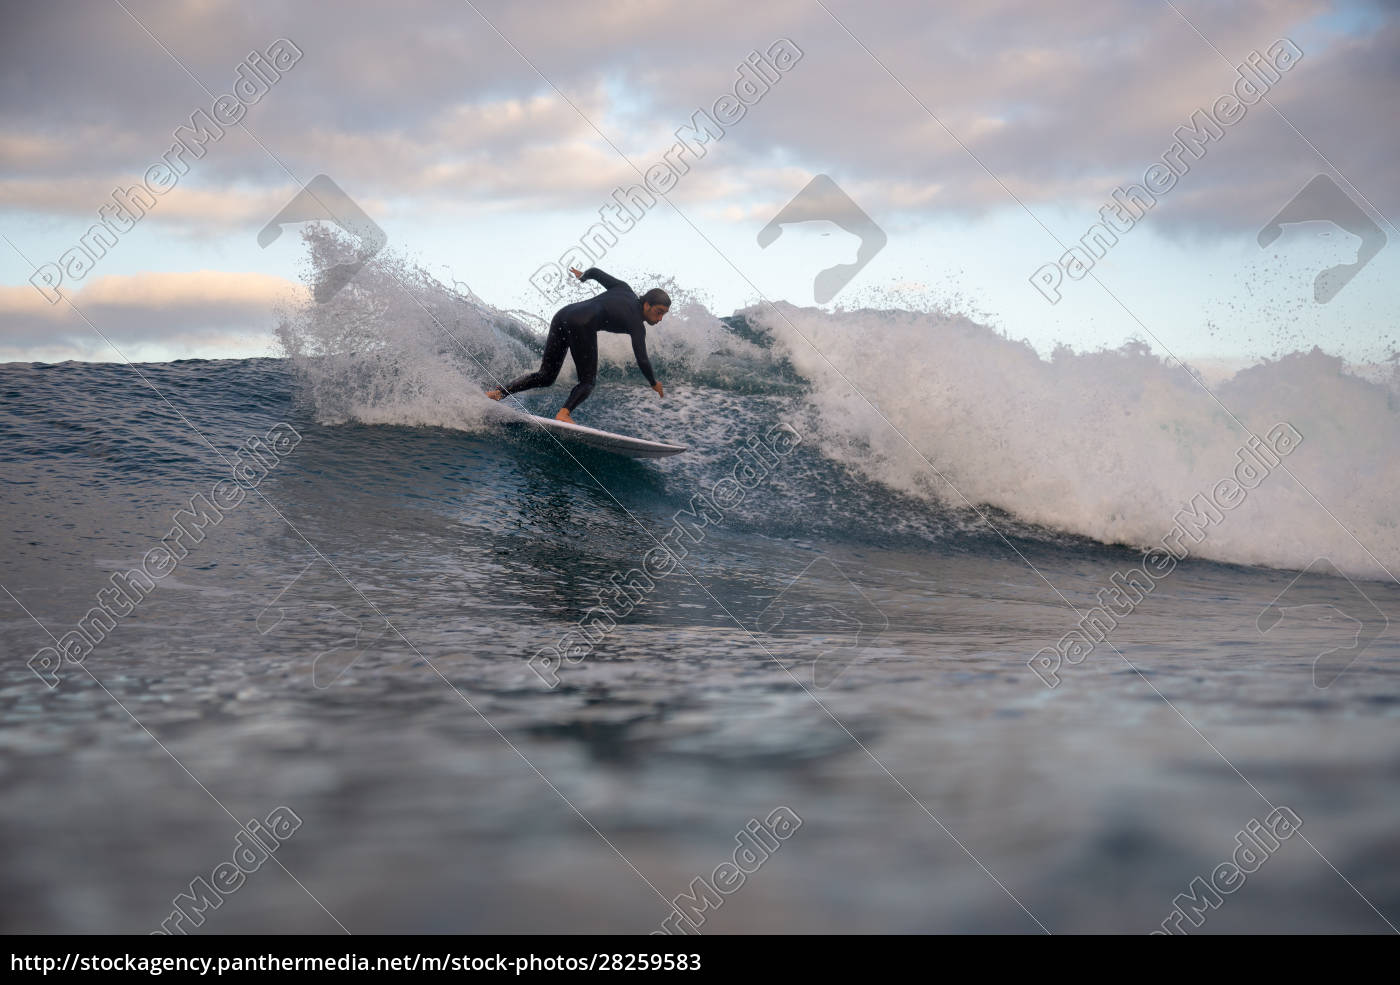 surfer, riding, waves, on, the, island - 28259583